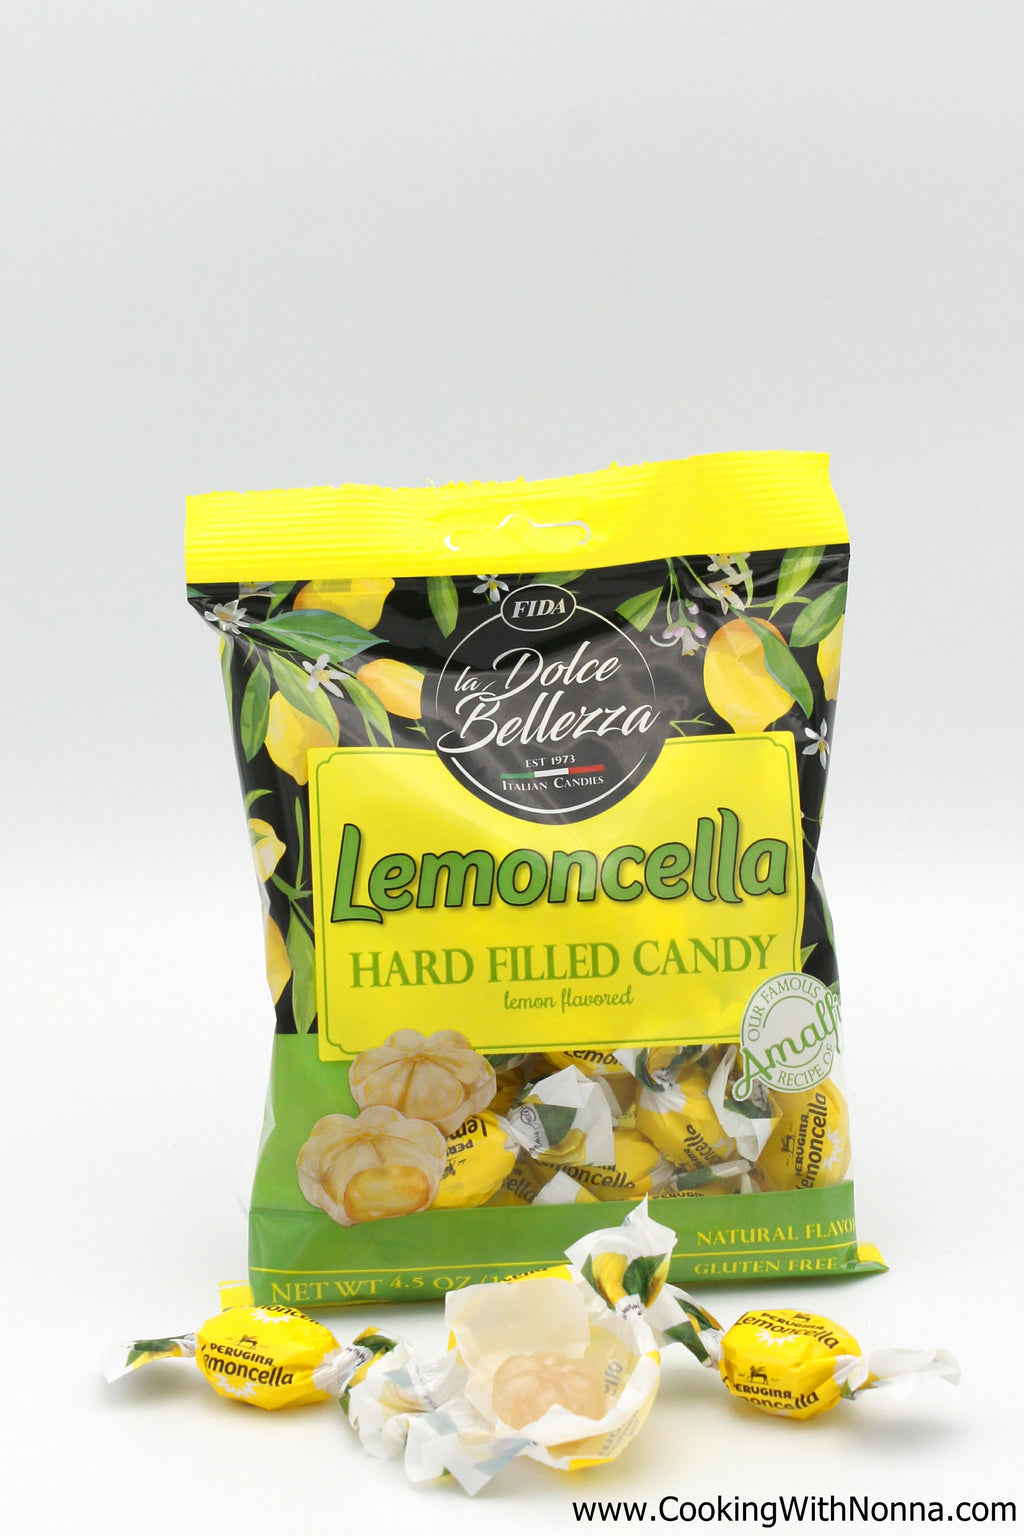 Lemoncella - Hard Filled Candies